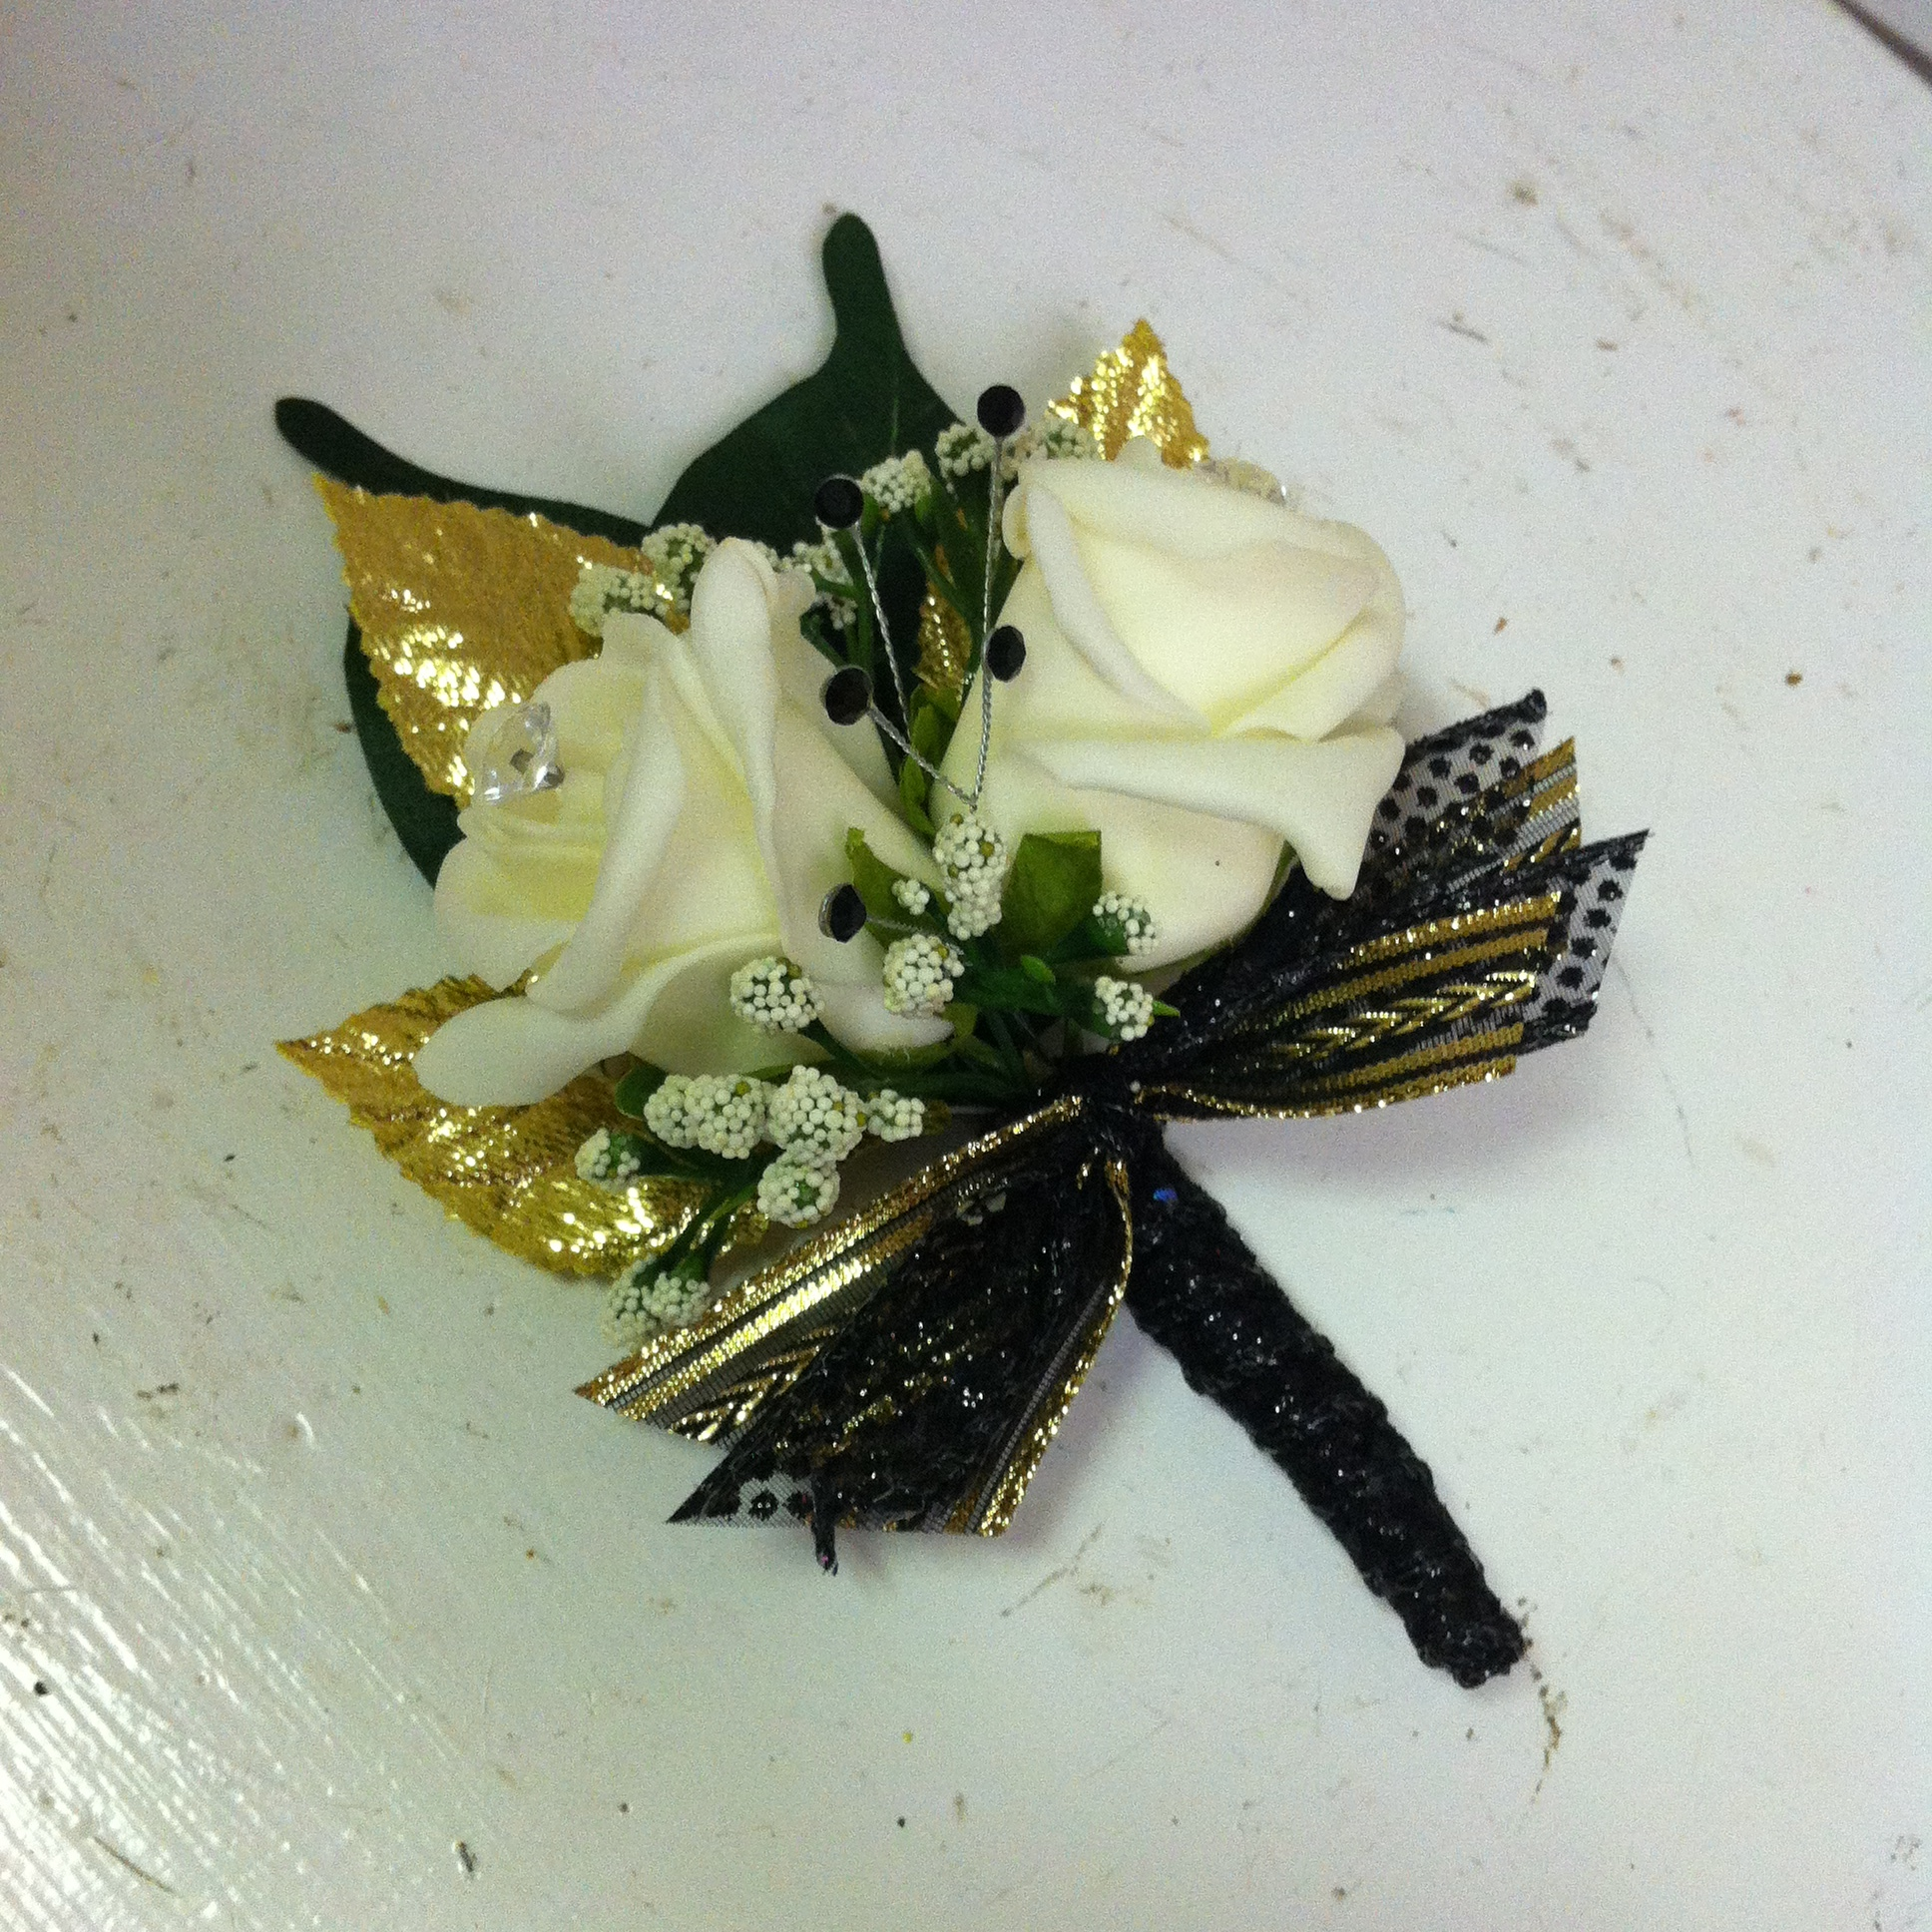 Plus Boutonniere (12) with Sparkly Leaves (2) $14